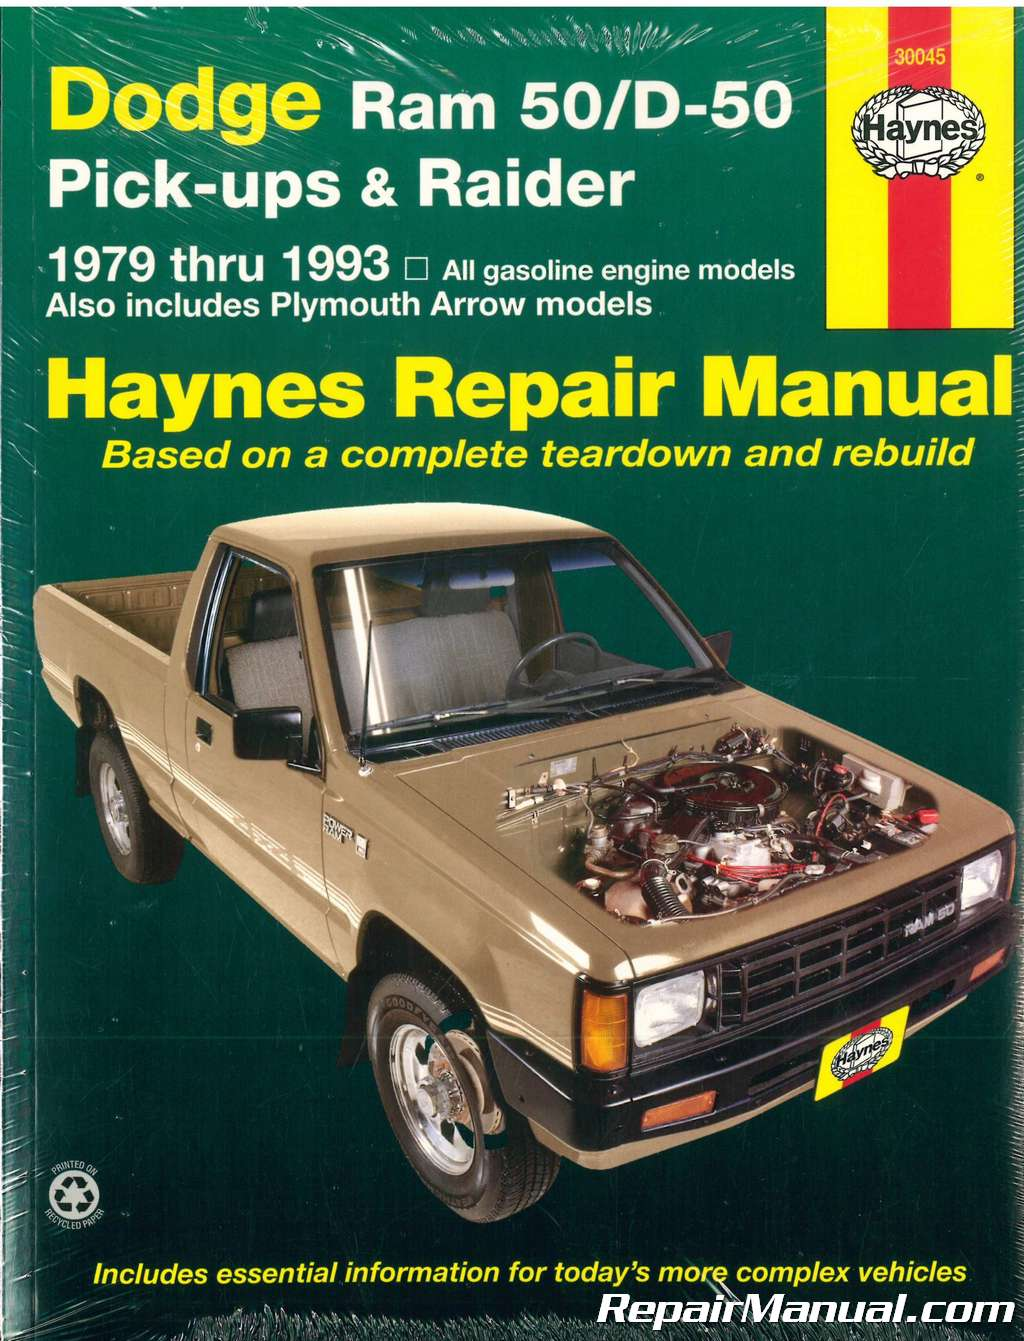 Haynes Dodge Ram 50 D50 Pick-up Raider and Plymouth Arrow Pick-up 1979-1993  Auto Repair Manual